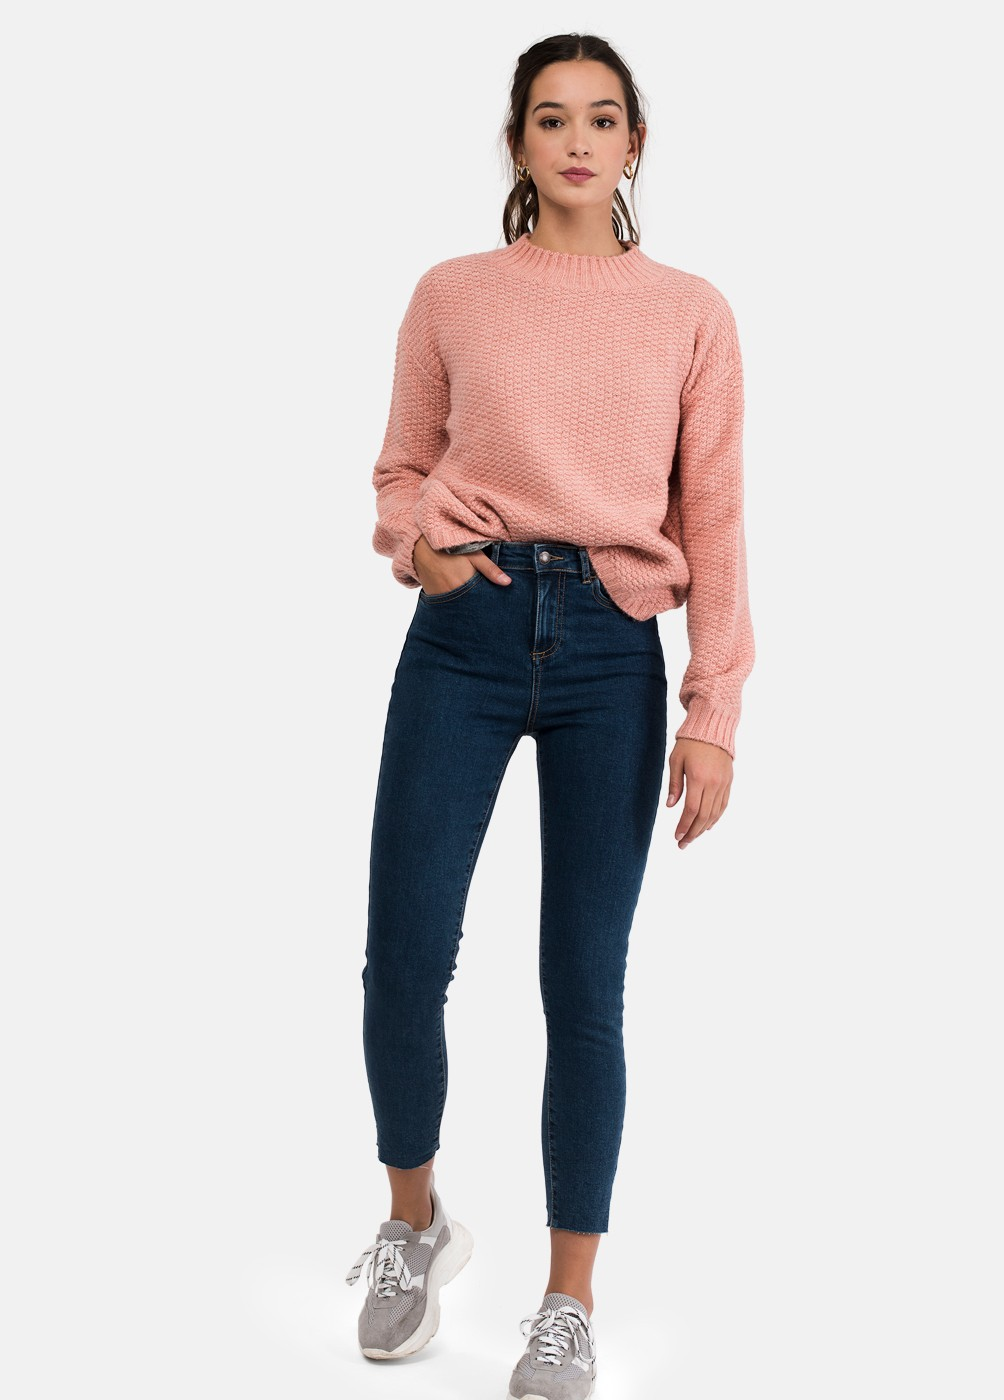 NIN HIGH WAISTED SKINNY JEANS